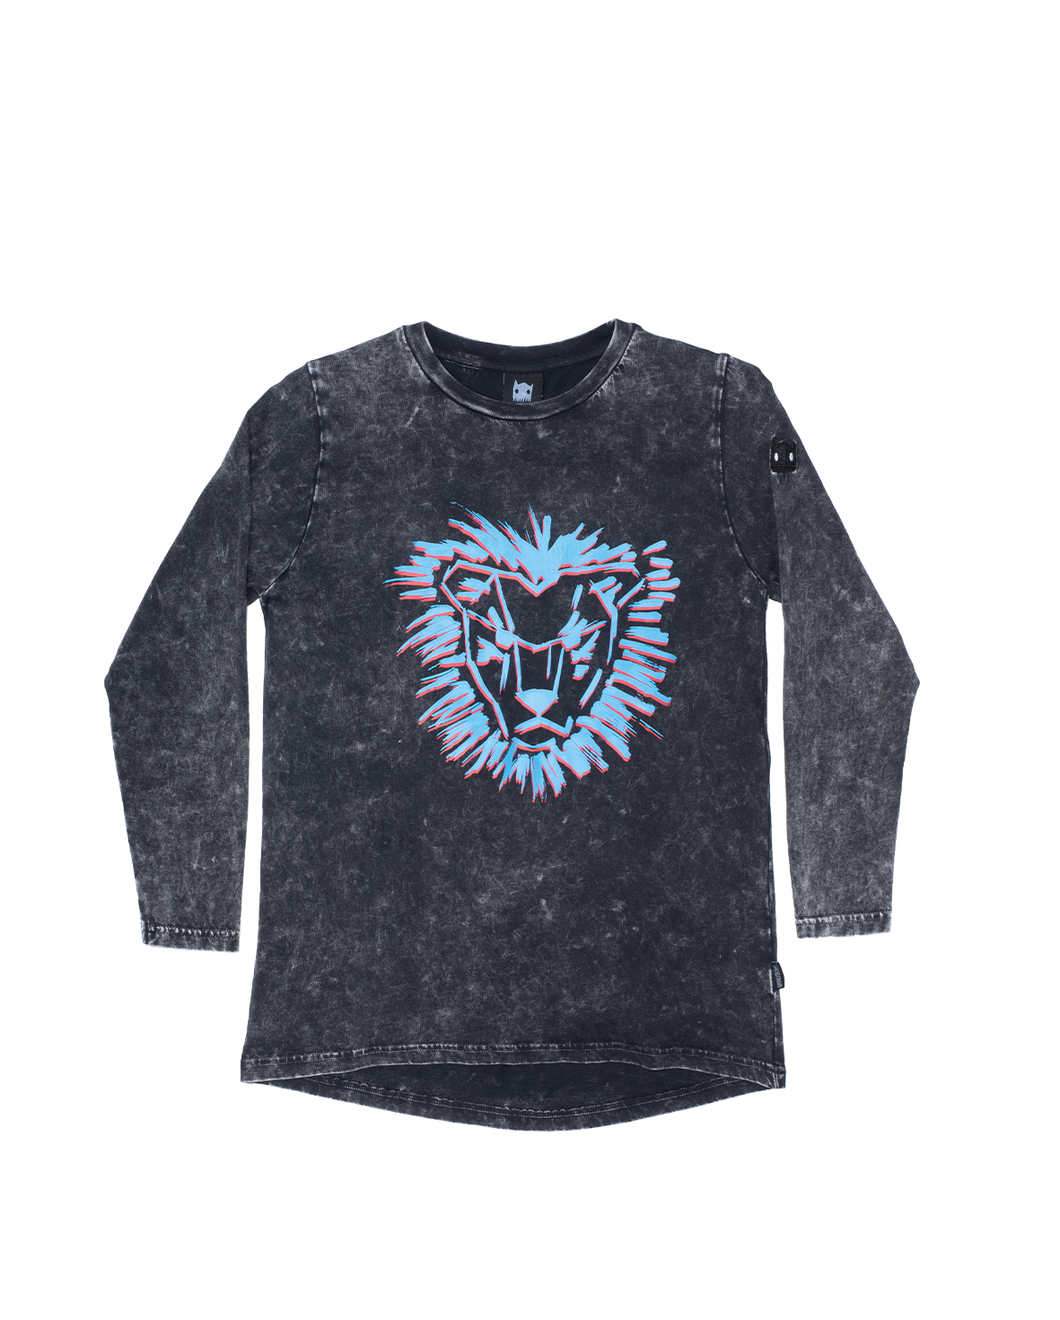 LS Lion Mane Scoop Back Tee